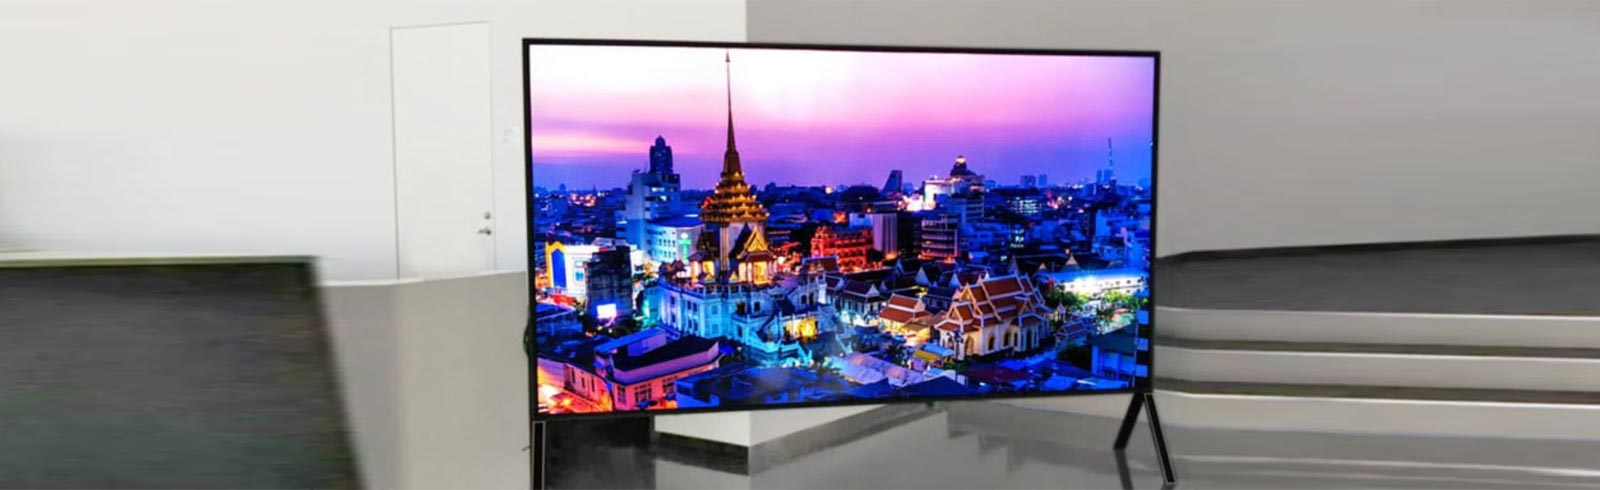 Sharp will present the biggest LCD TV in the world with 8K resolution and 120-inch diagonal size